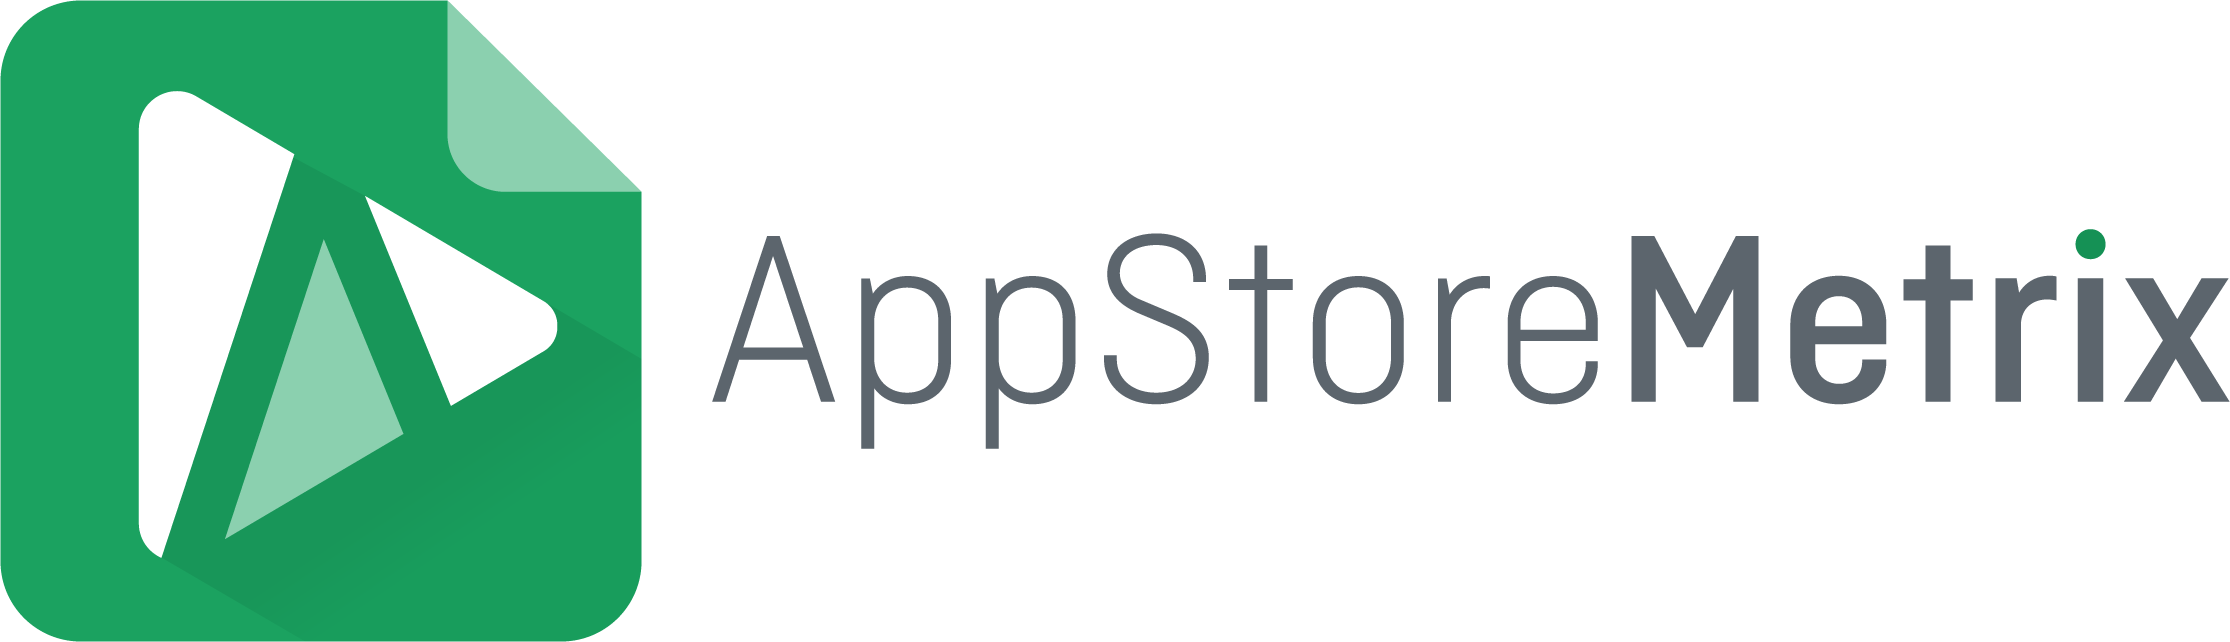 The App Store Data Google Sheets Add-on